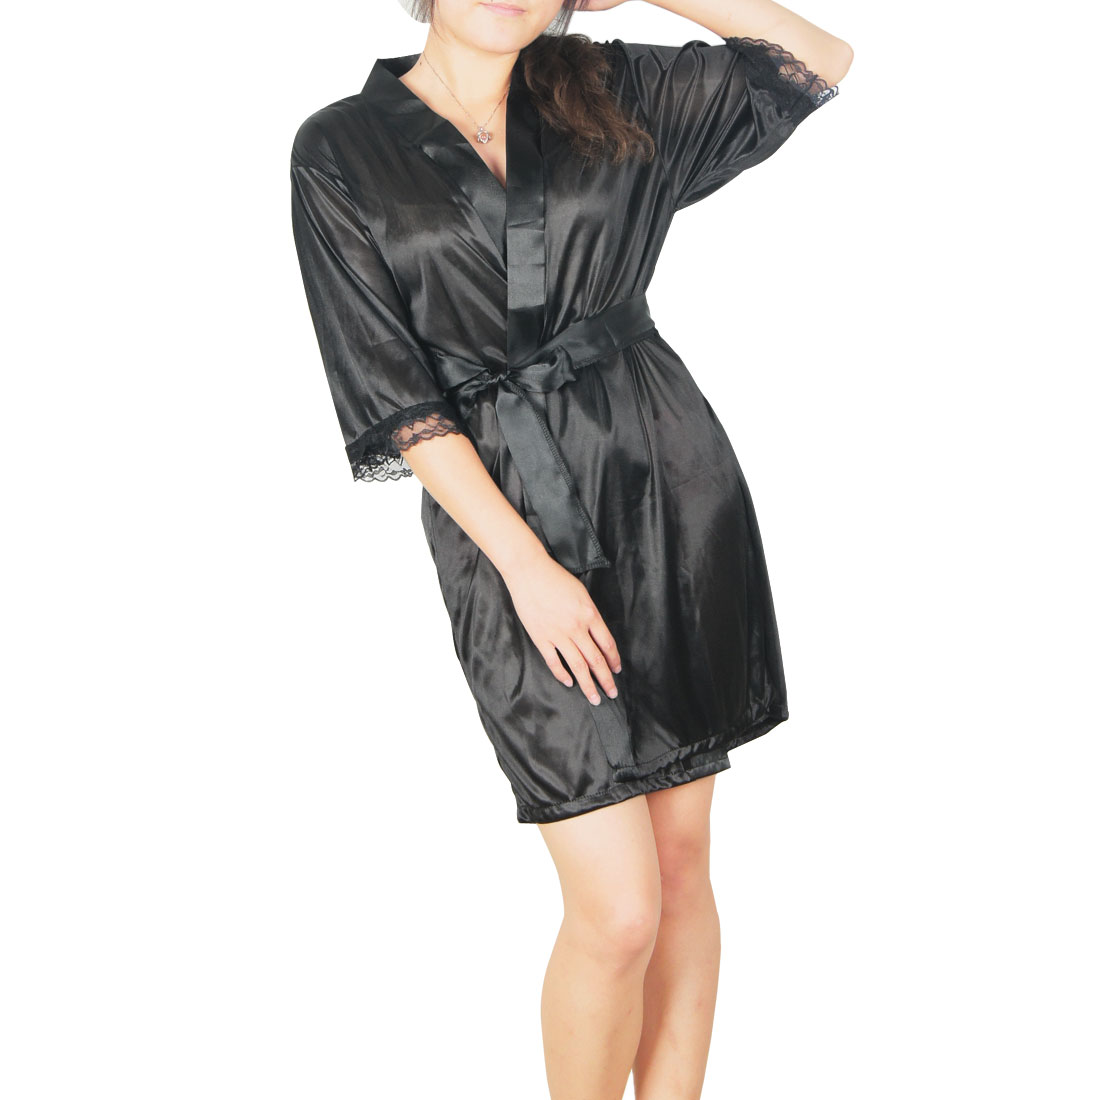 Black Front Opening Short Sleeve Semi Sheer Night Gown w Waist Strap for Ladies S